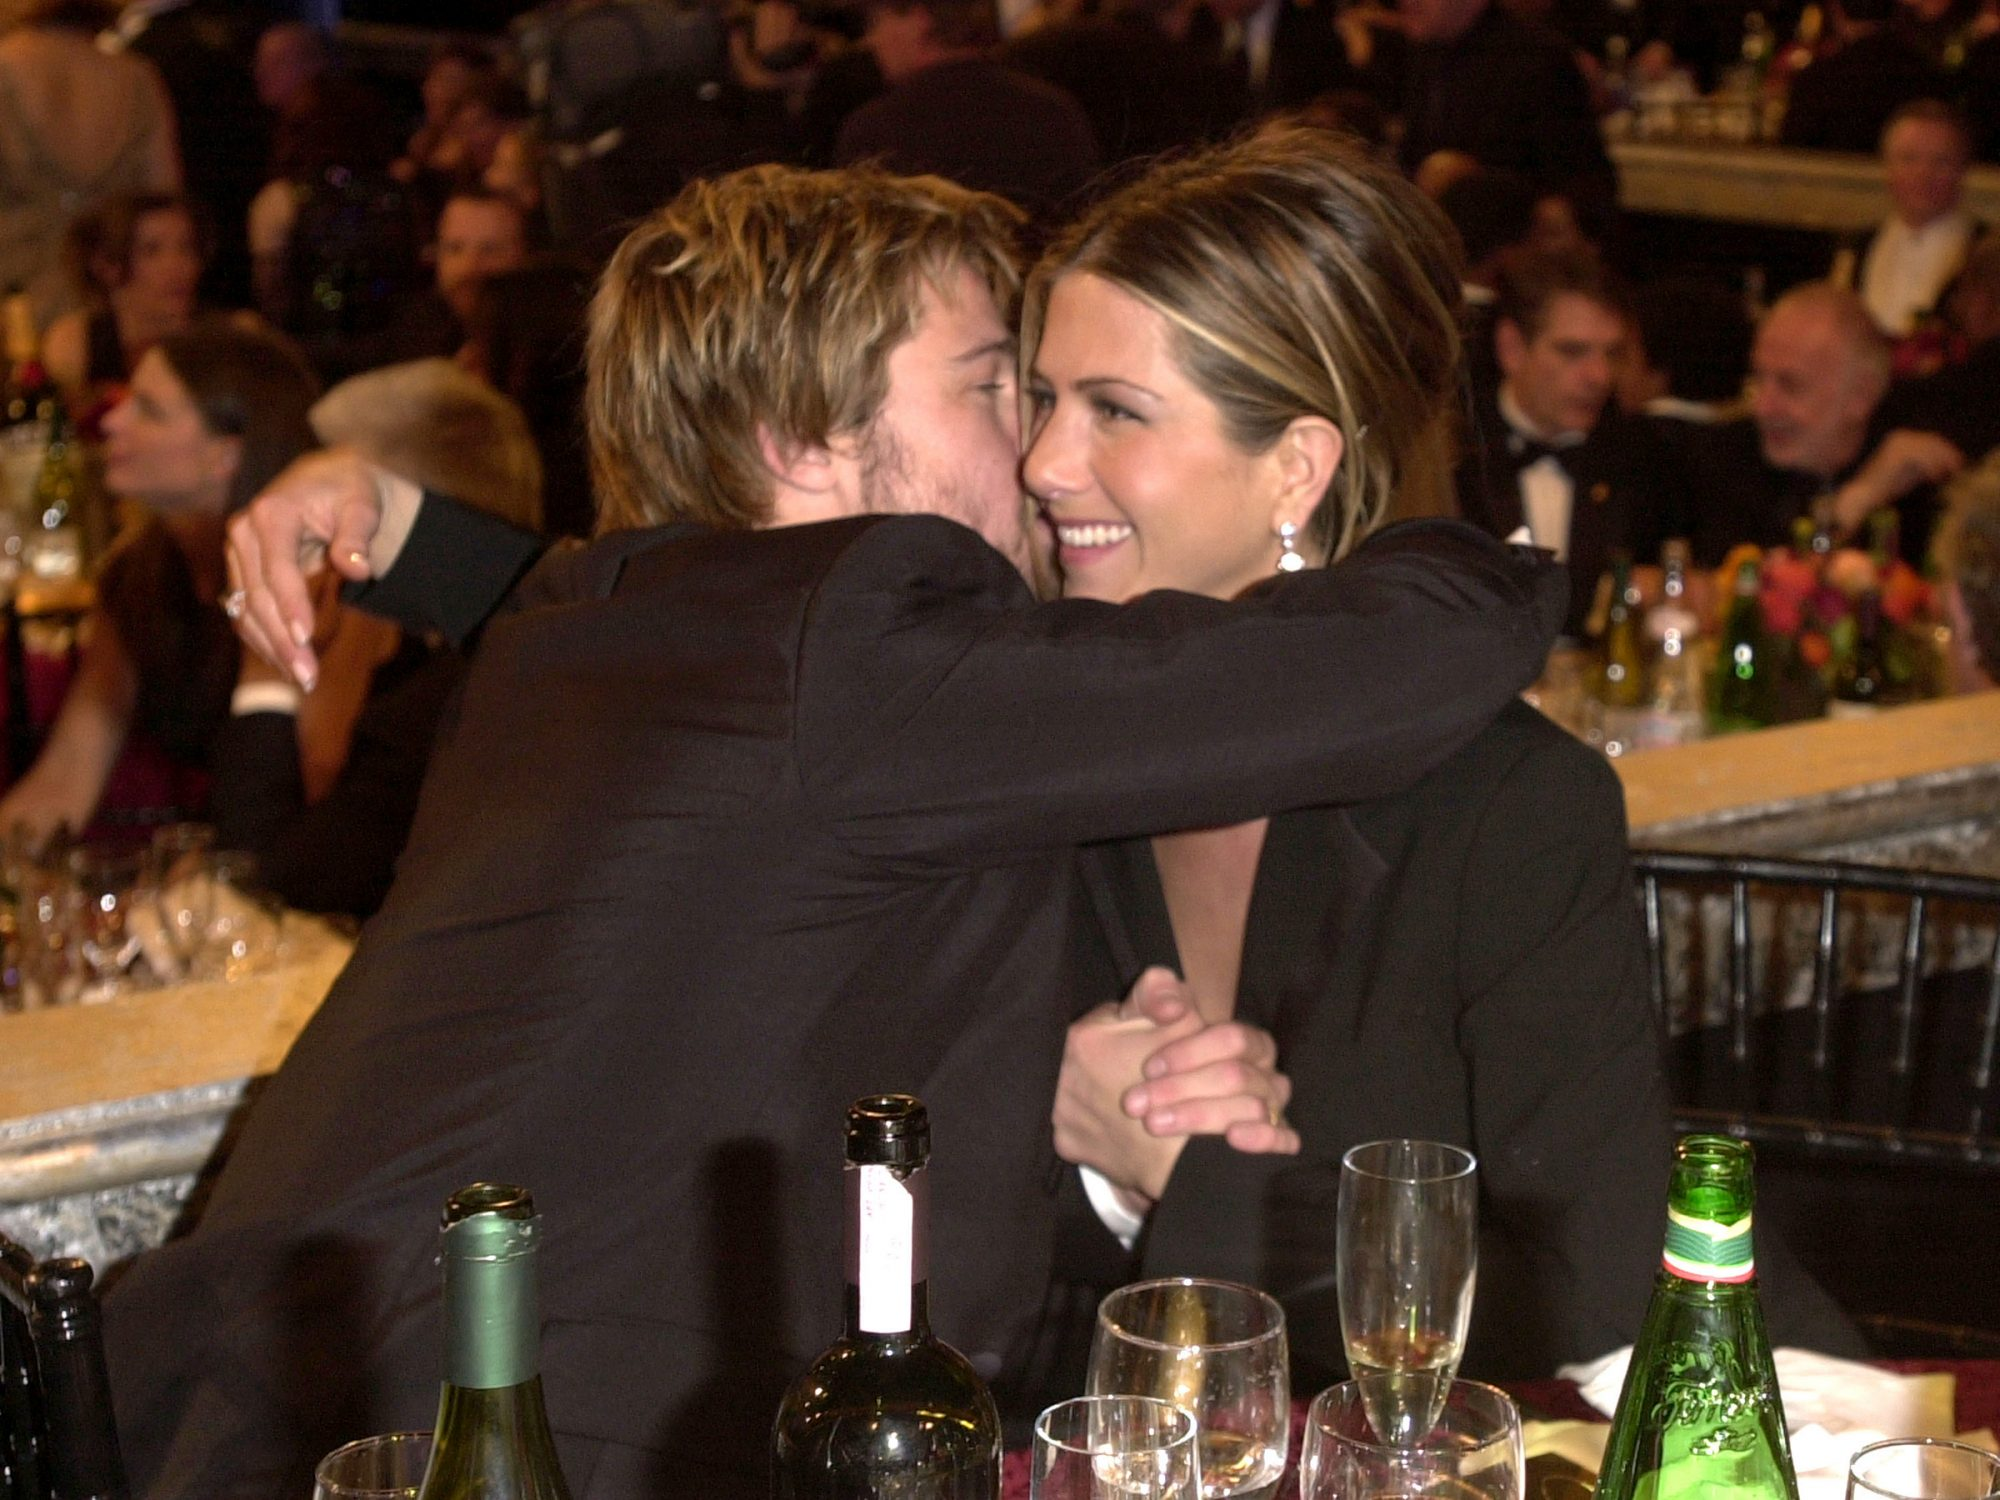 The 59th Annual Golden Globe Awards - Audience and Show